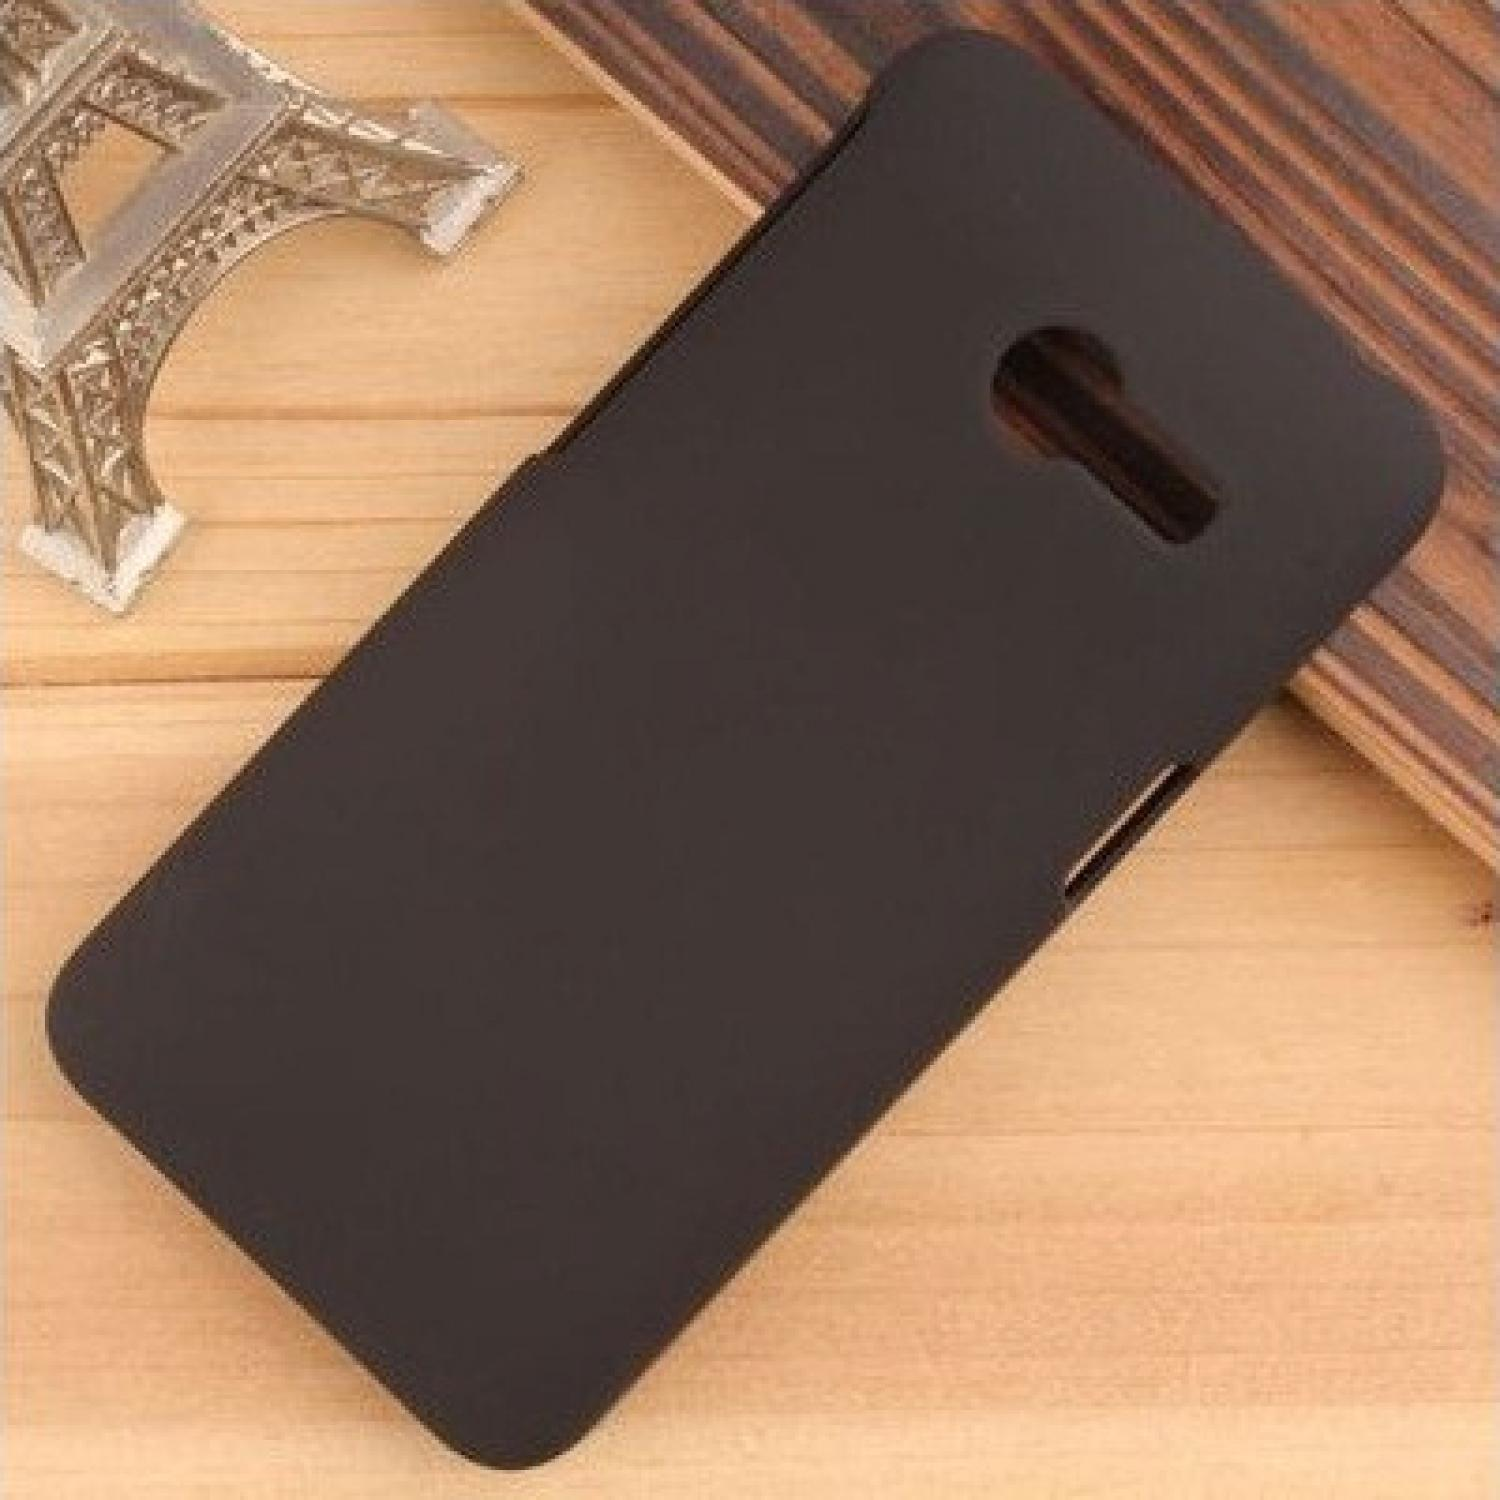 Snap On Rubberized Matte Hard Case for Asus Zenfone Casing HP Murah Terbaru